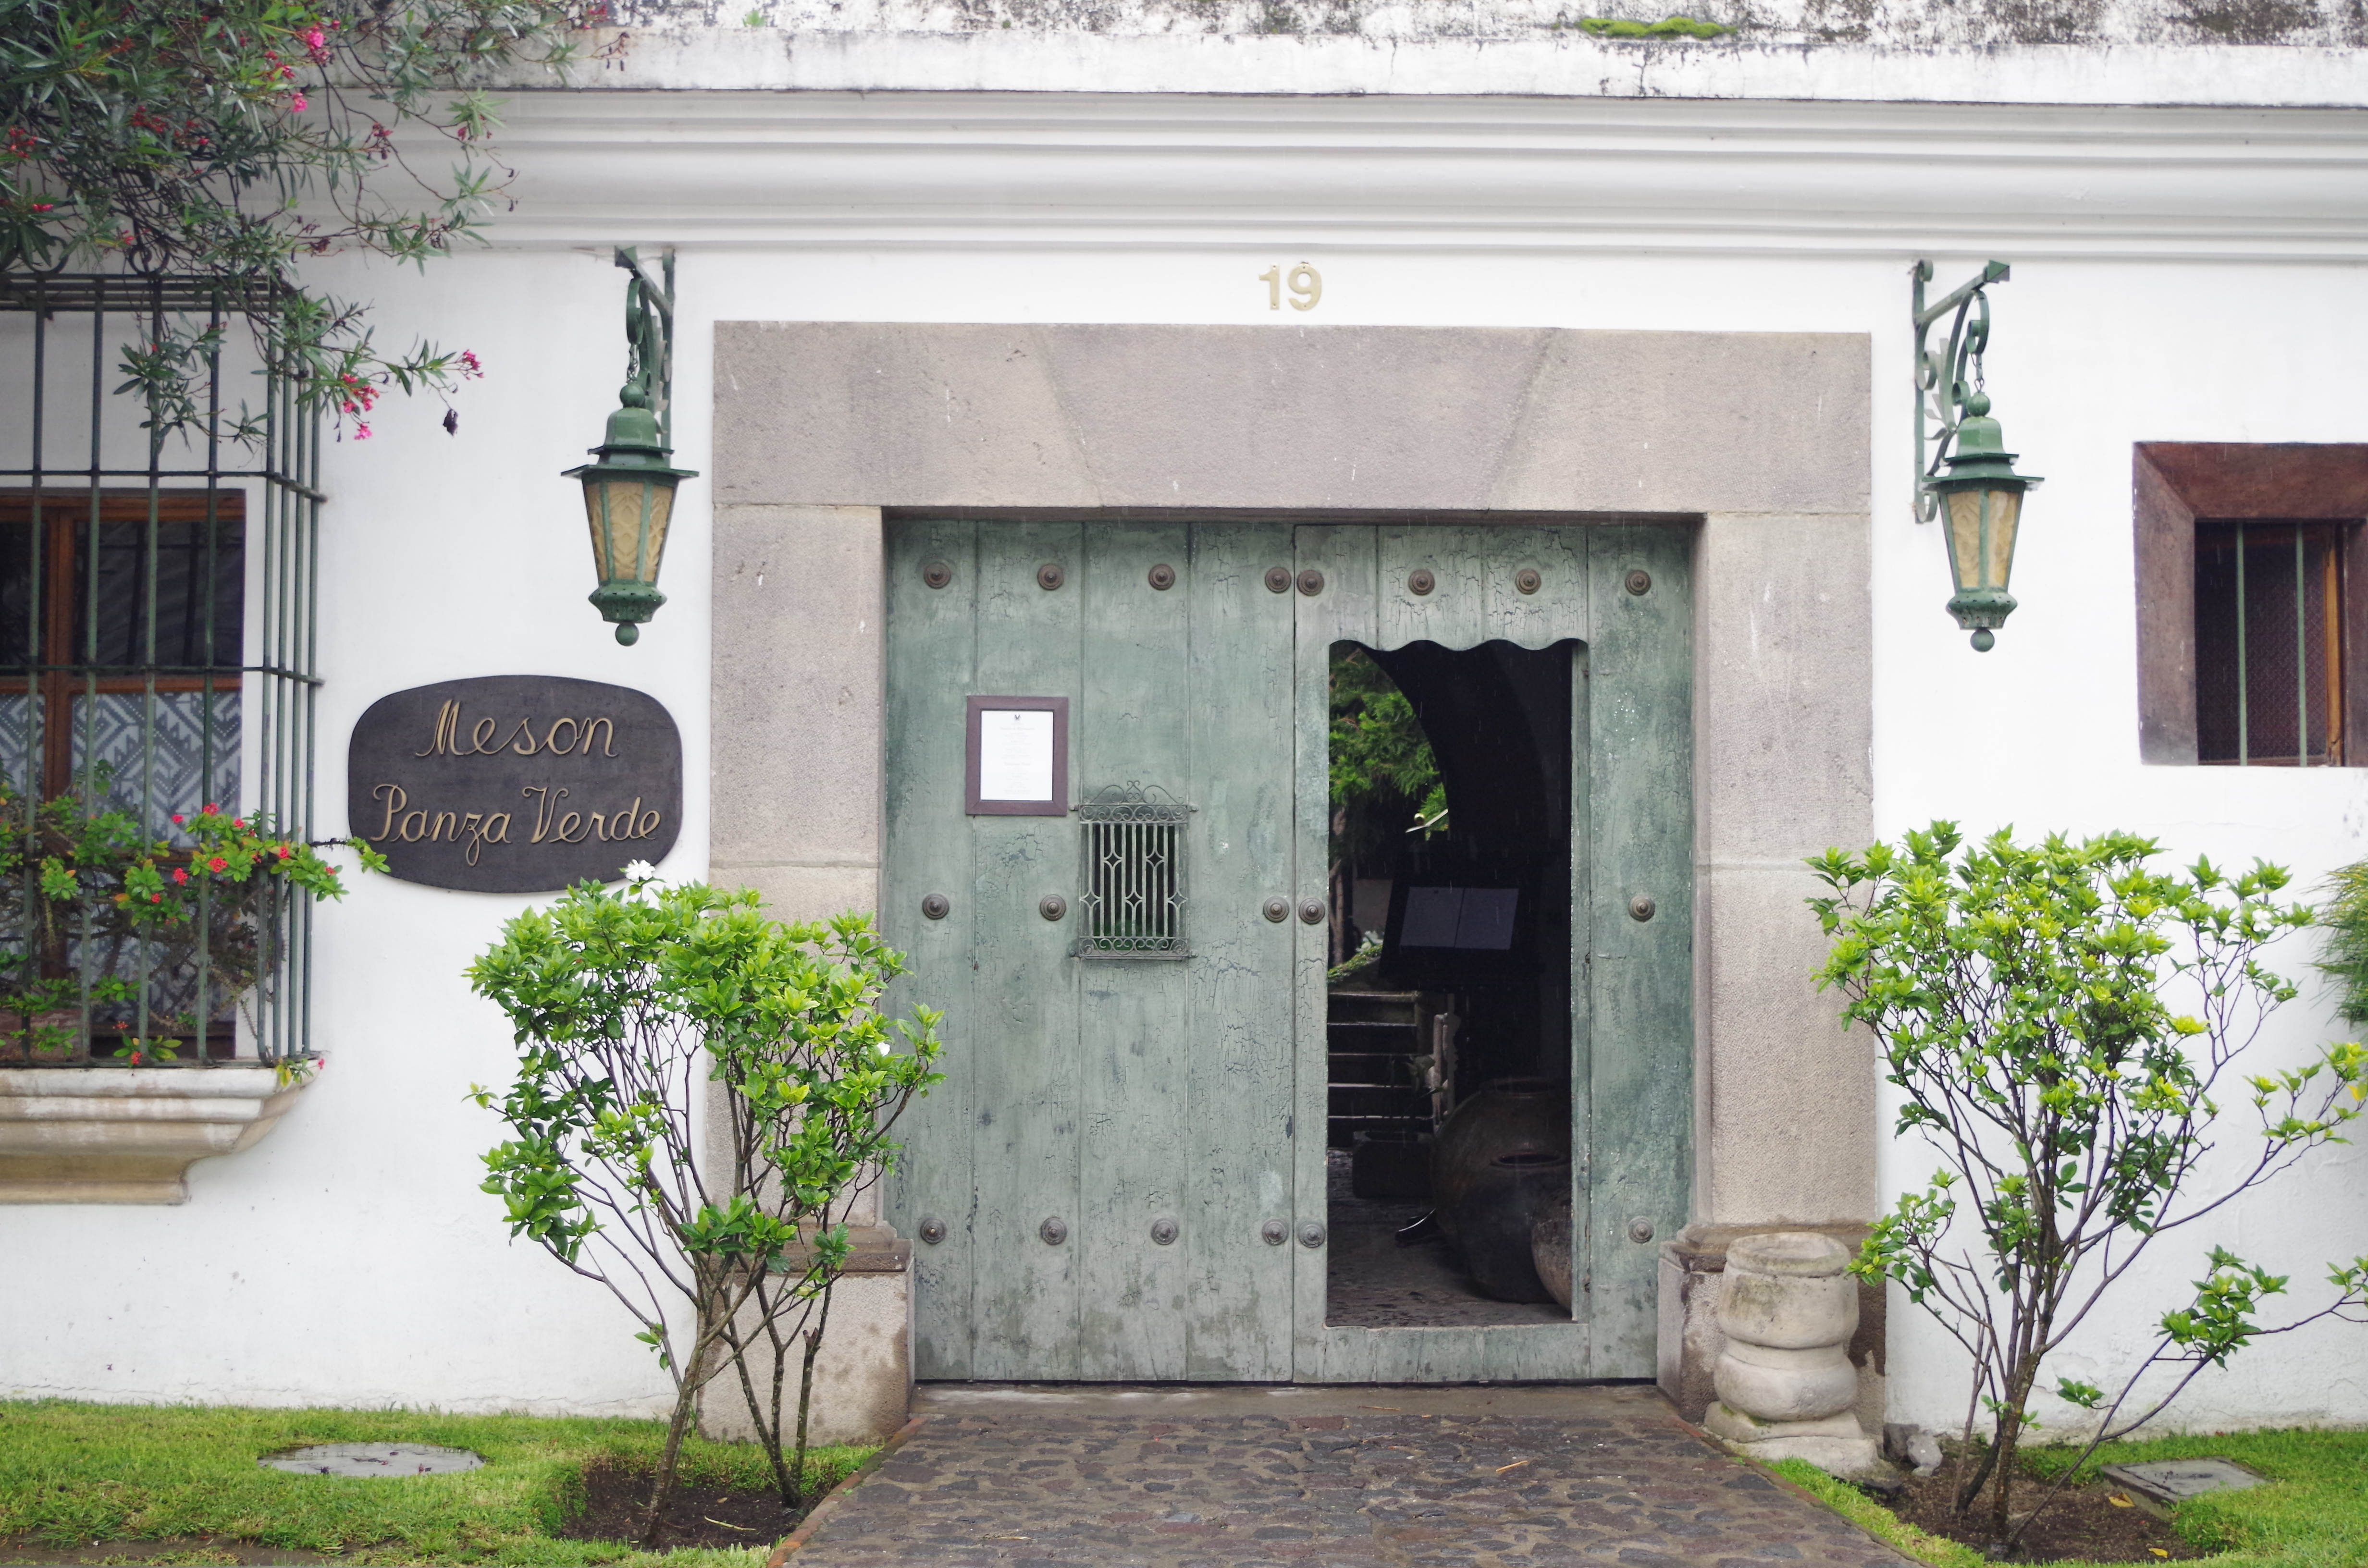 Entrance to Meson Panza Verde